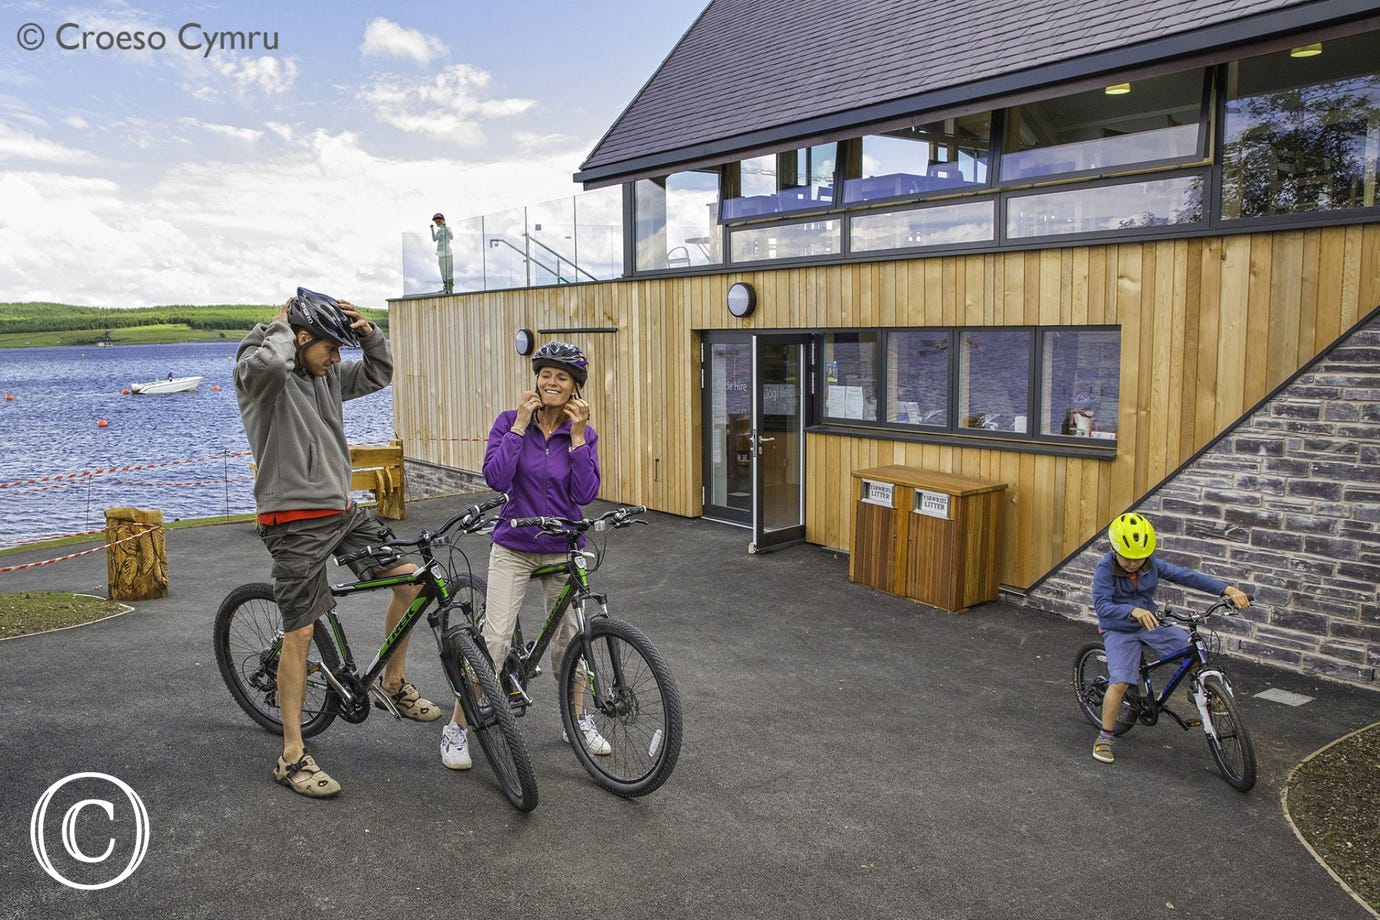 Llyn Brenig (6 miles) has a Visitor Centre, cafe & range of leisure amenities